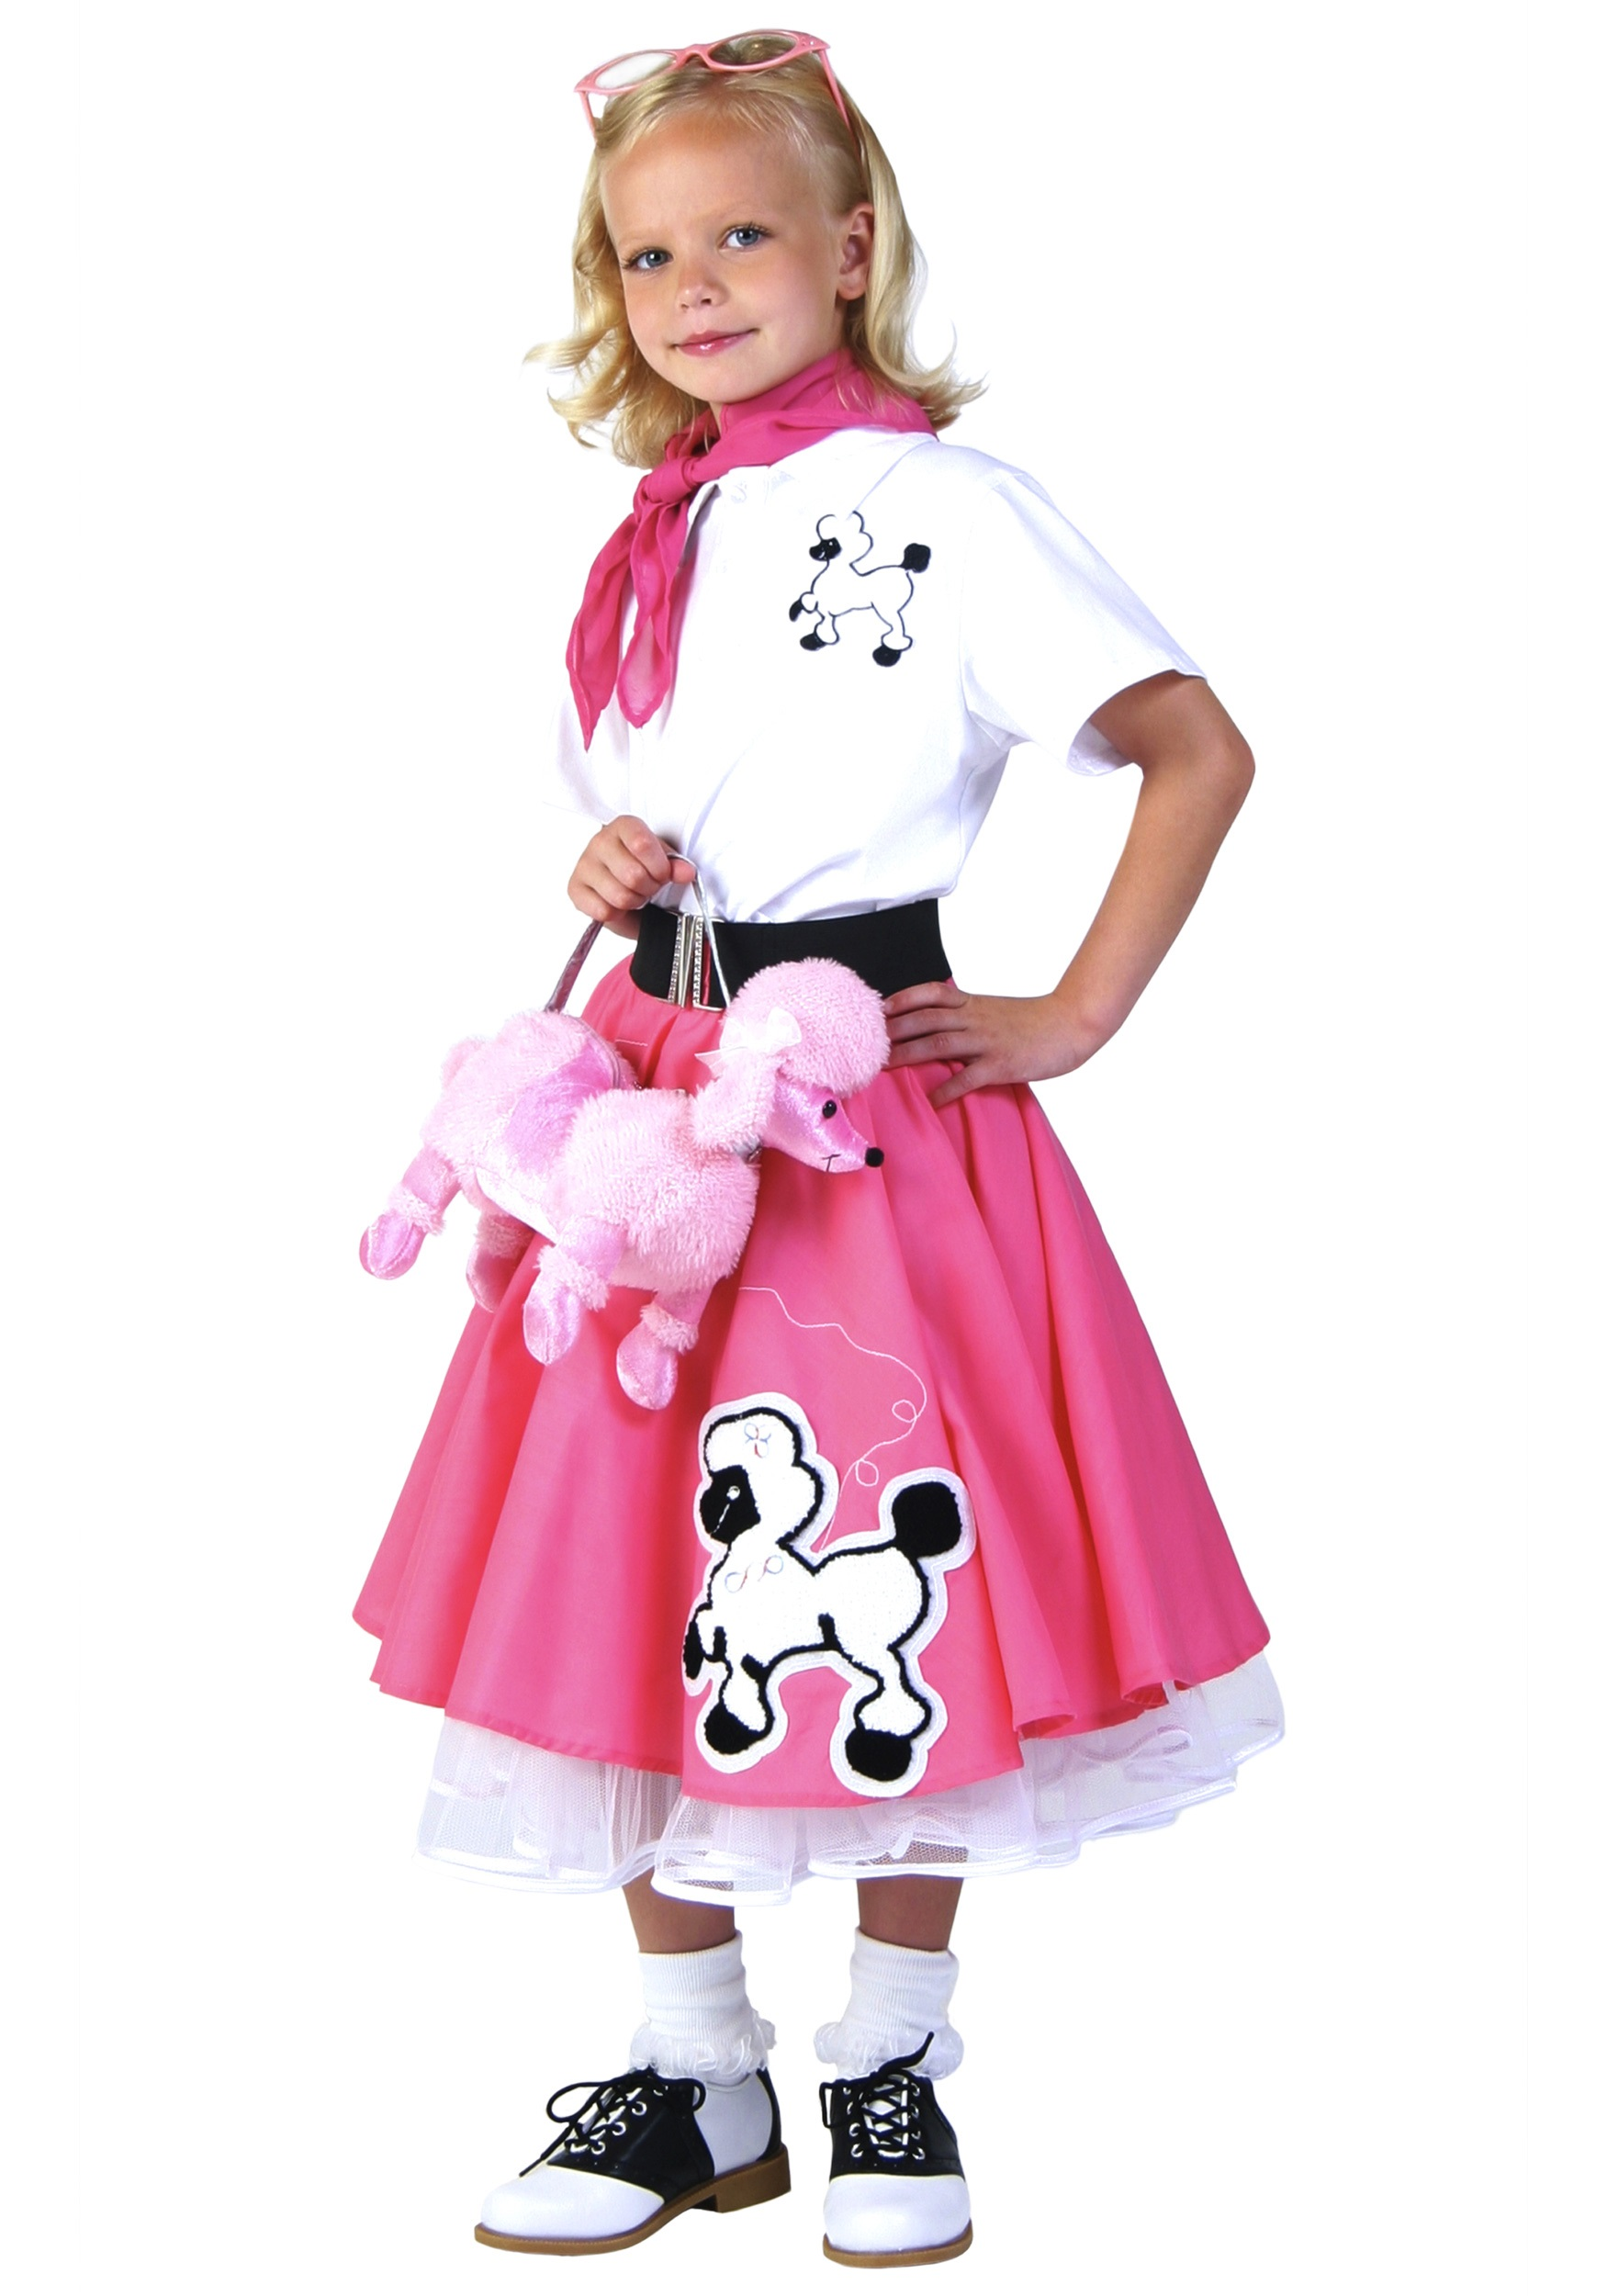 Kids Deluxe Pink Poodle Skirt Costume  sc 1 st  Halloween Costumes : kids poodle skirt costume  - Germanpascual.Com